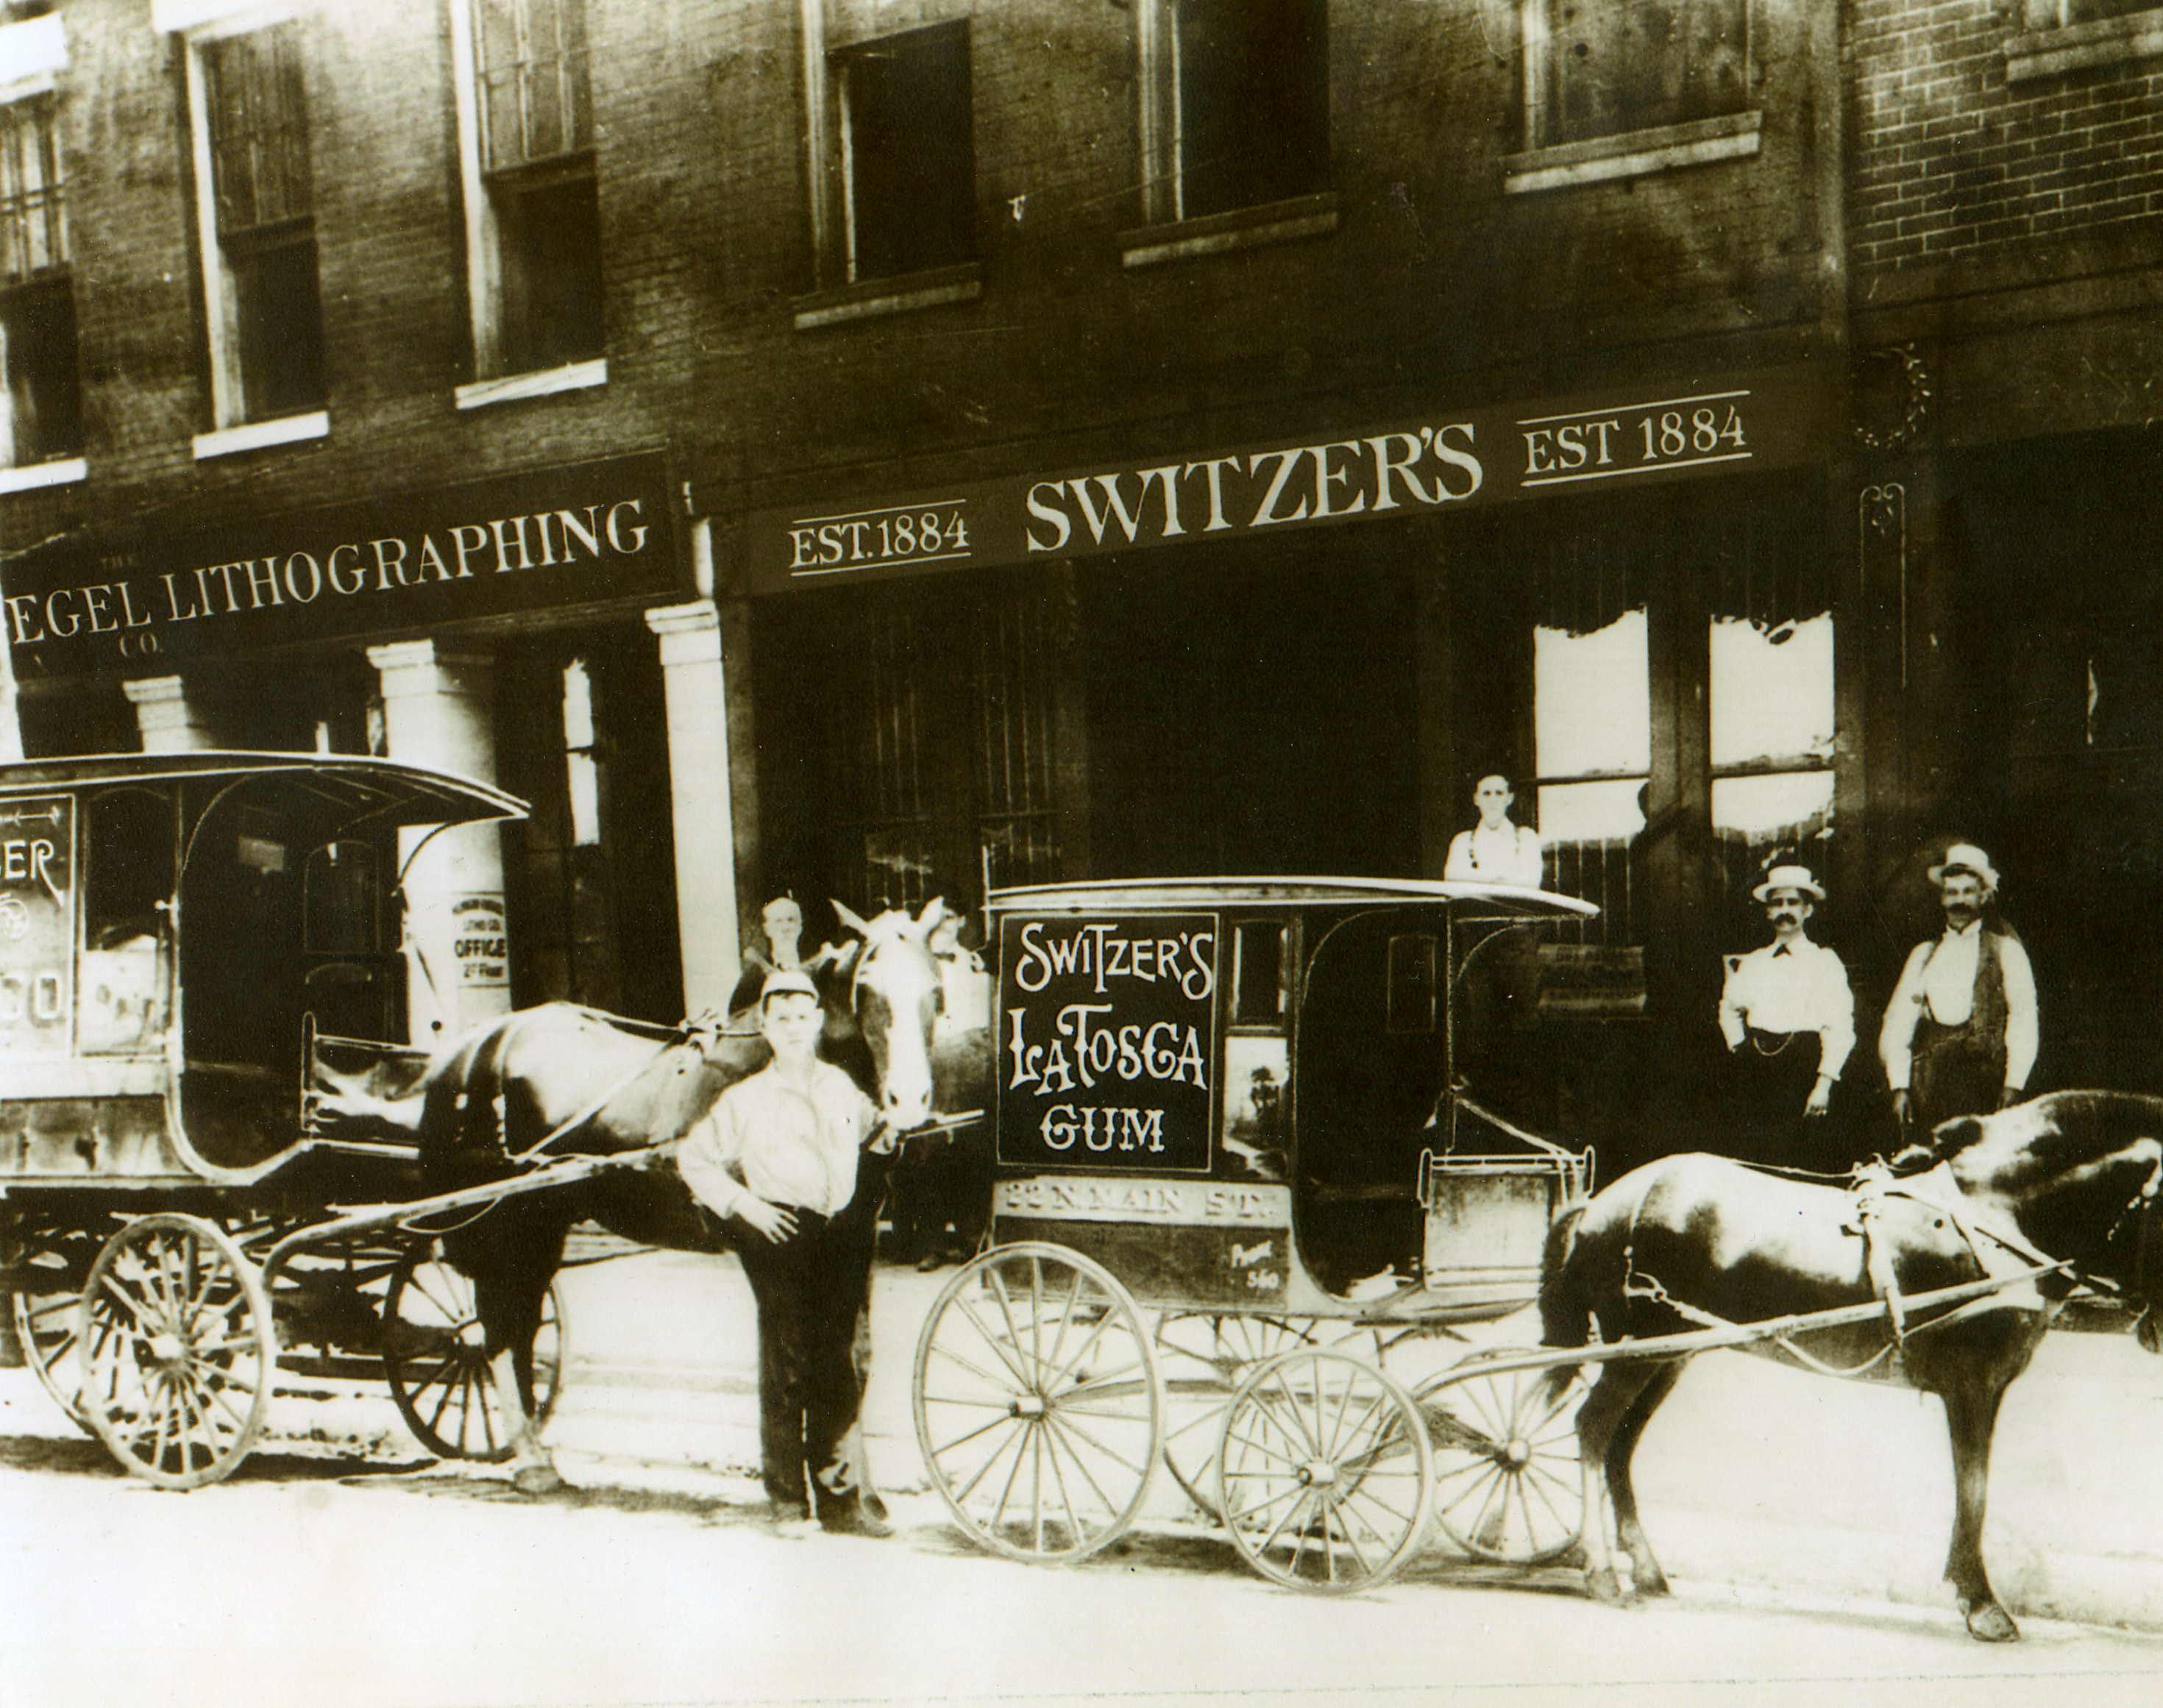 frederick michael switzer was born in st louis his father an